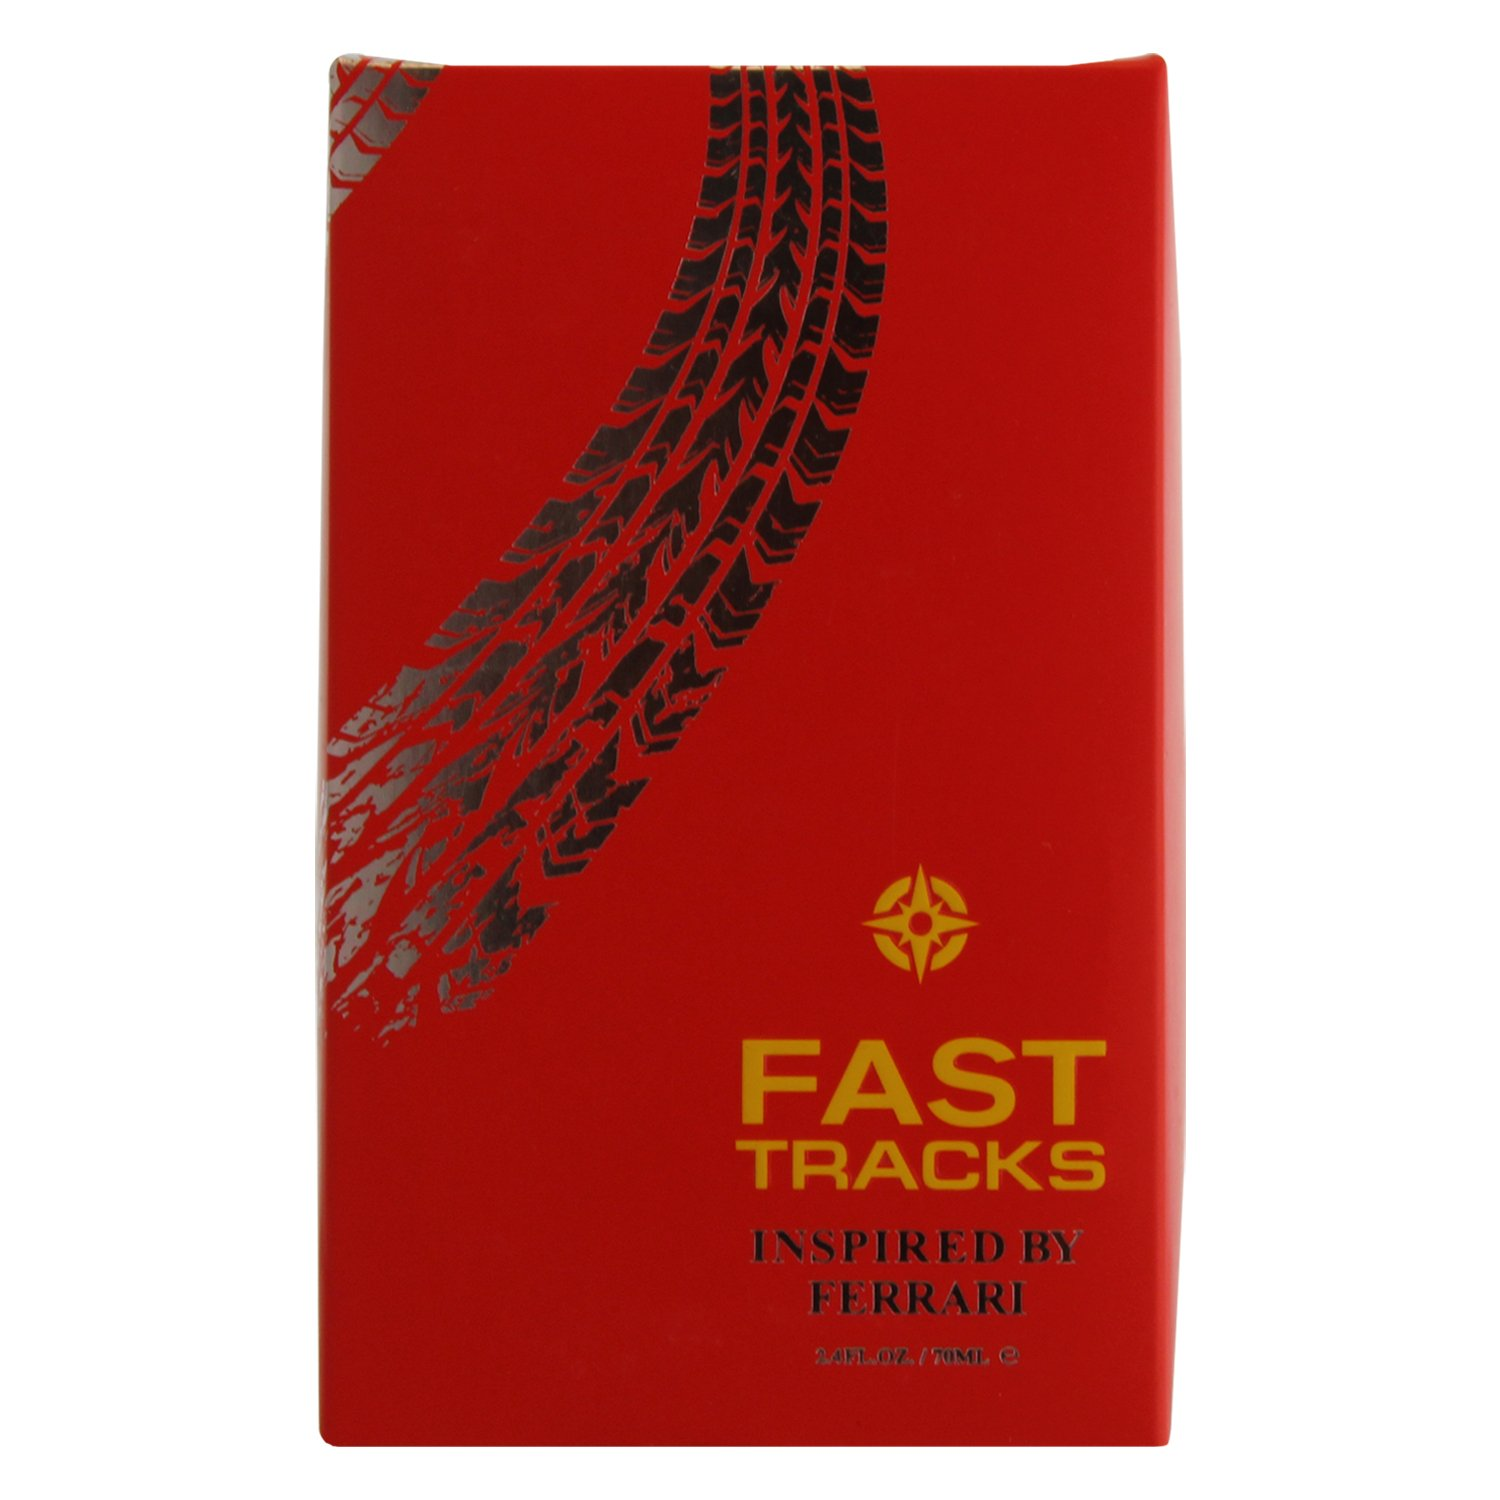 Amazon.com : Fast Tracks For Men, 2.4 Fl. Oz./70 ml - Inspired By Ferrari Cologne : Beauty